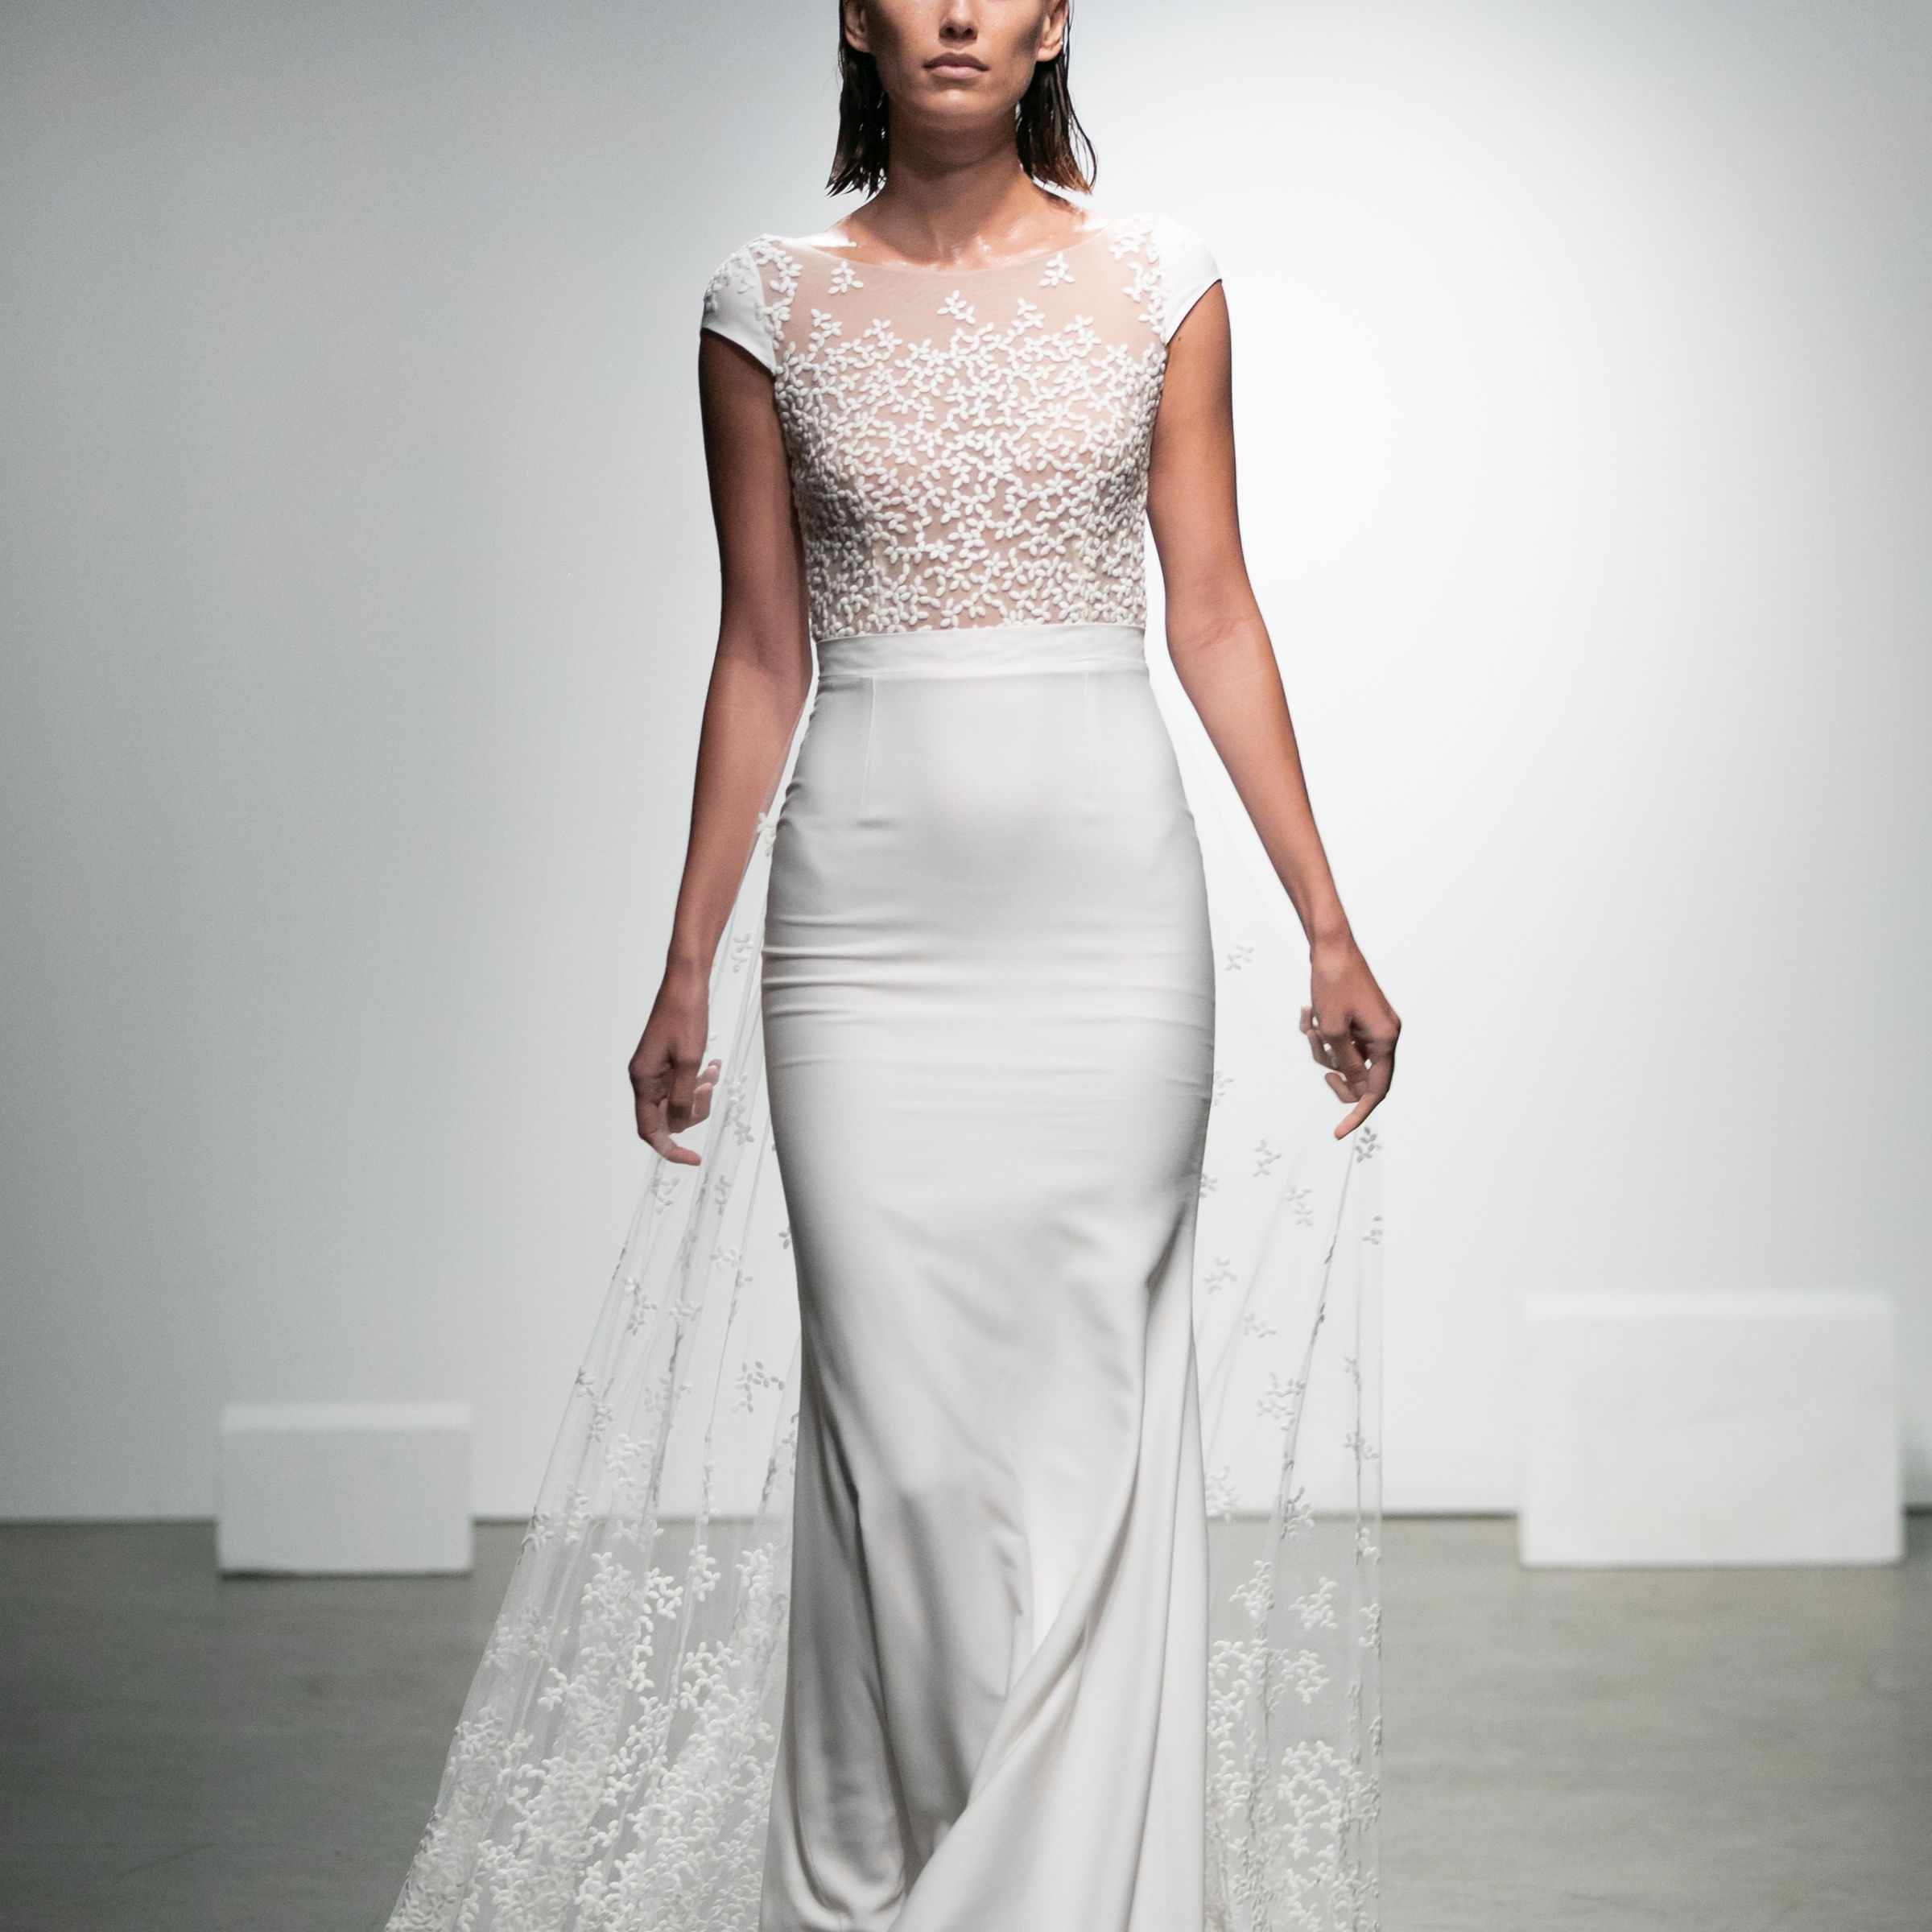 Model in high-neck crepe dress with cap sleeves and floral-embroidered tulle with a train